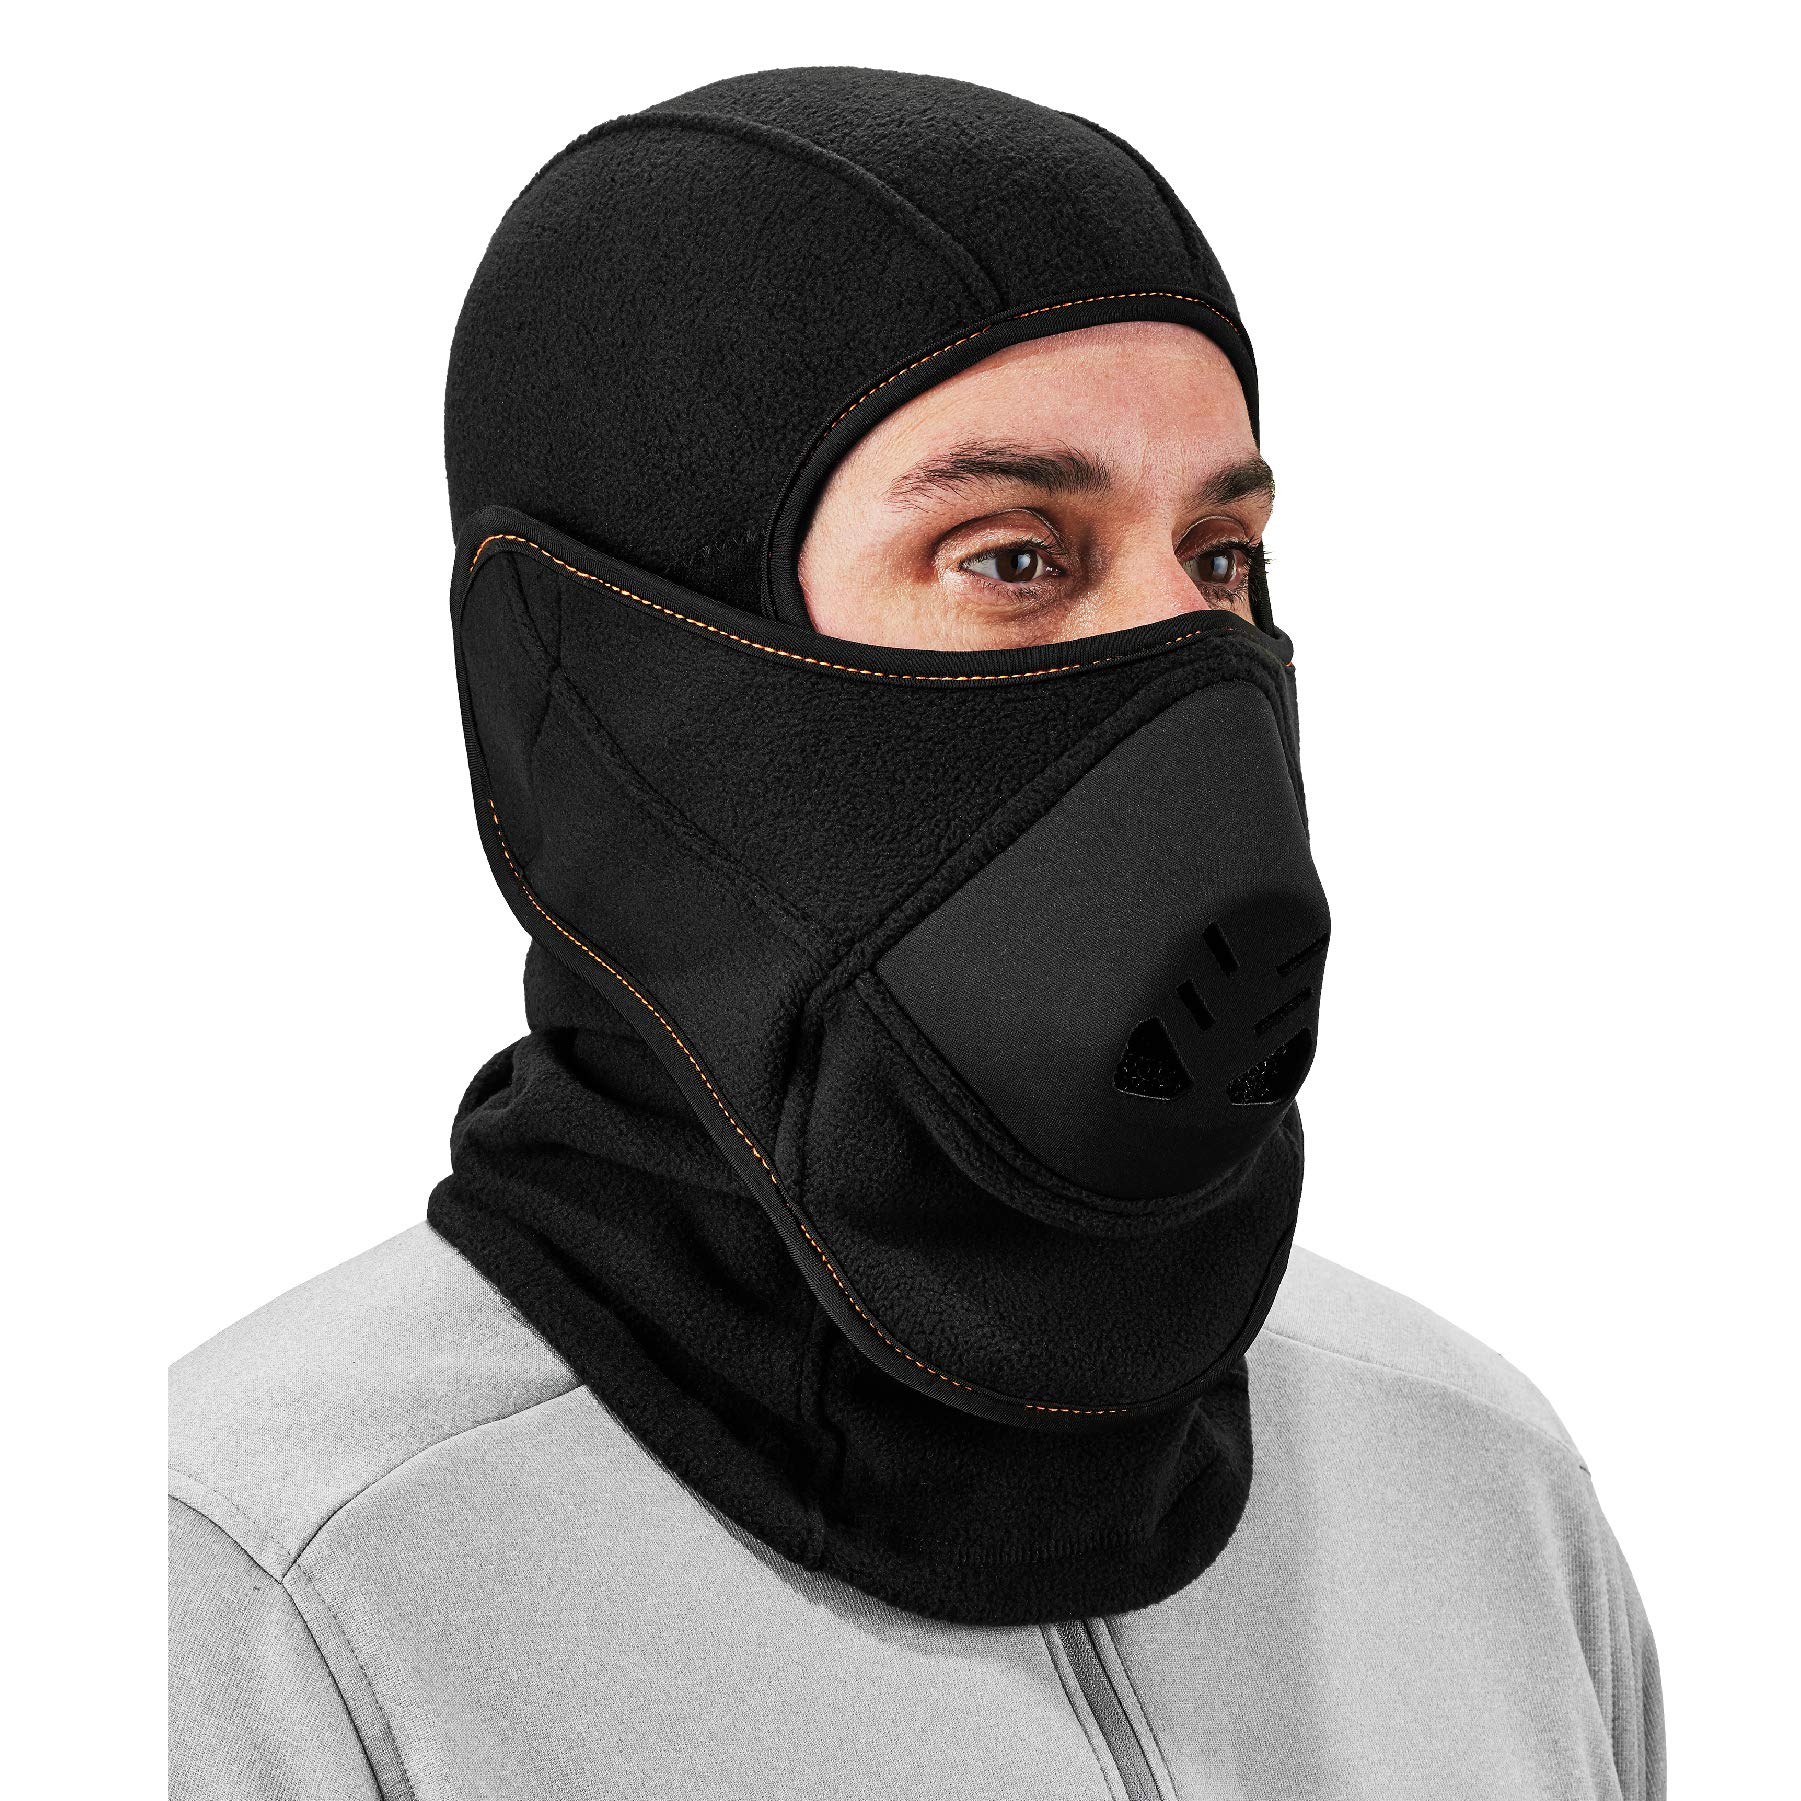 Balaclava with Detachable Heat Exchanger Face Mask, Winter Ski Mask, Ergodyne N-Ferno 6970,Black